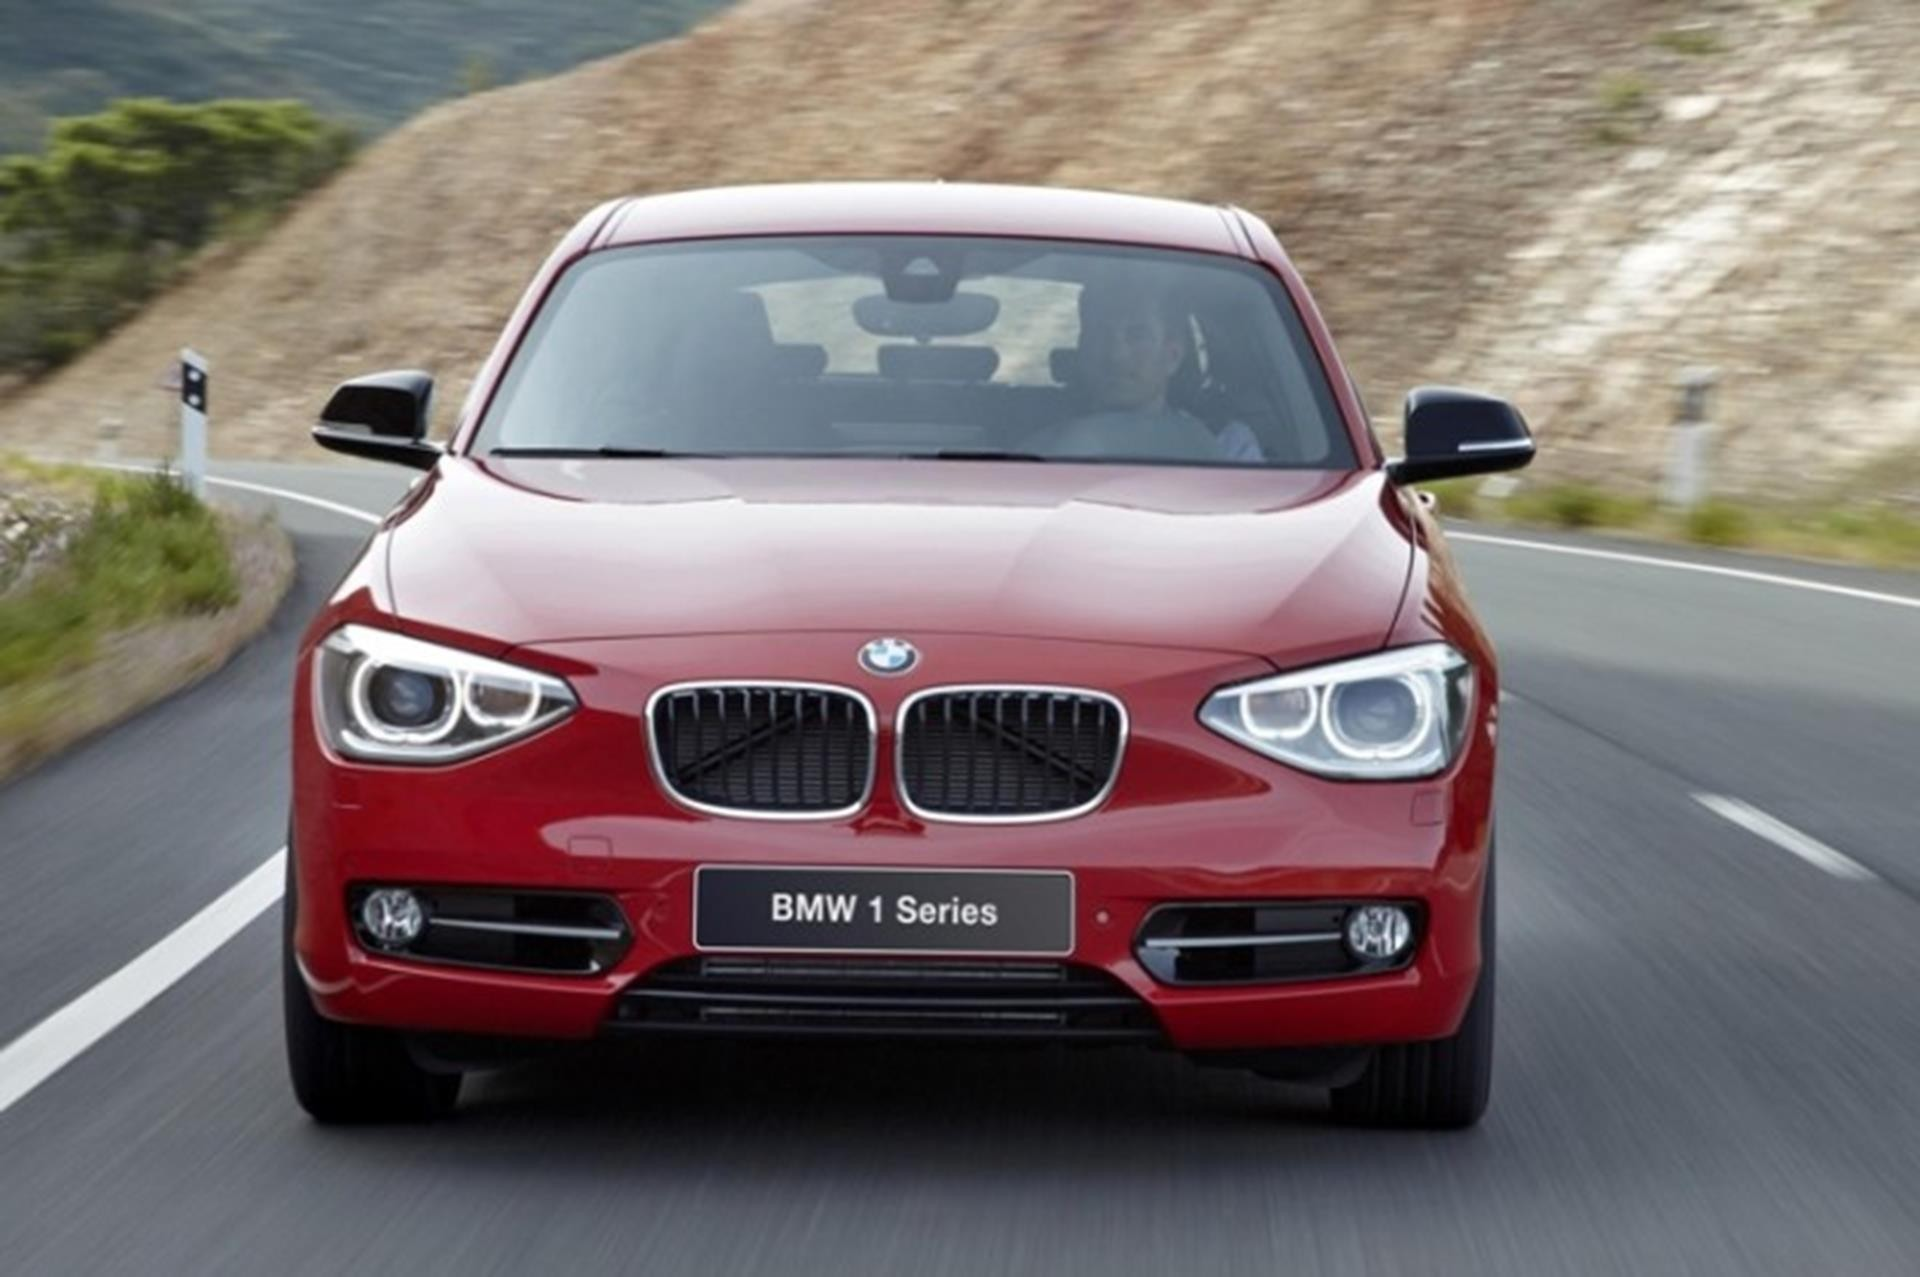 The new BMW 1 Series, Sport Line